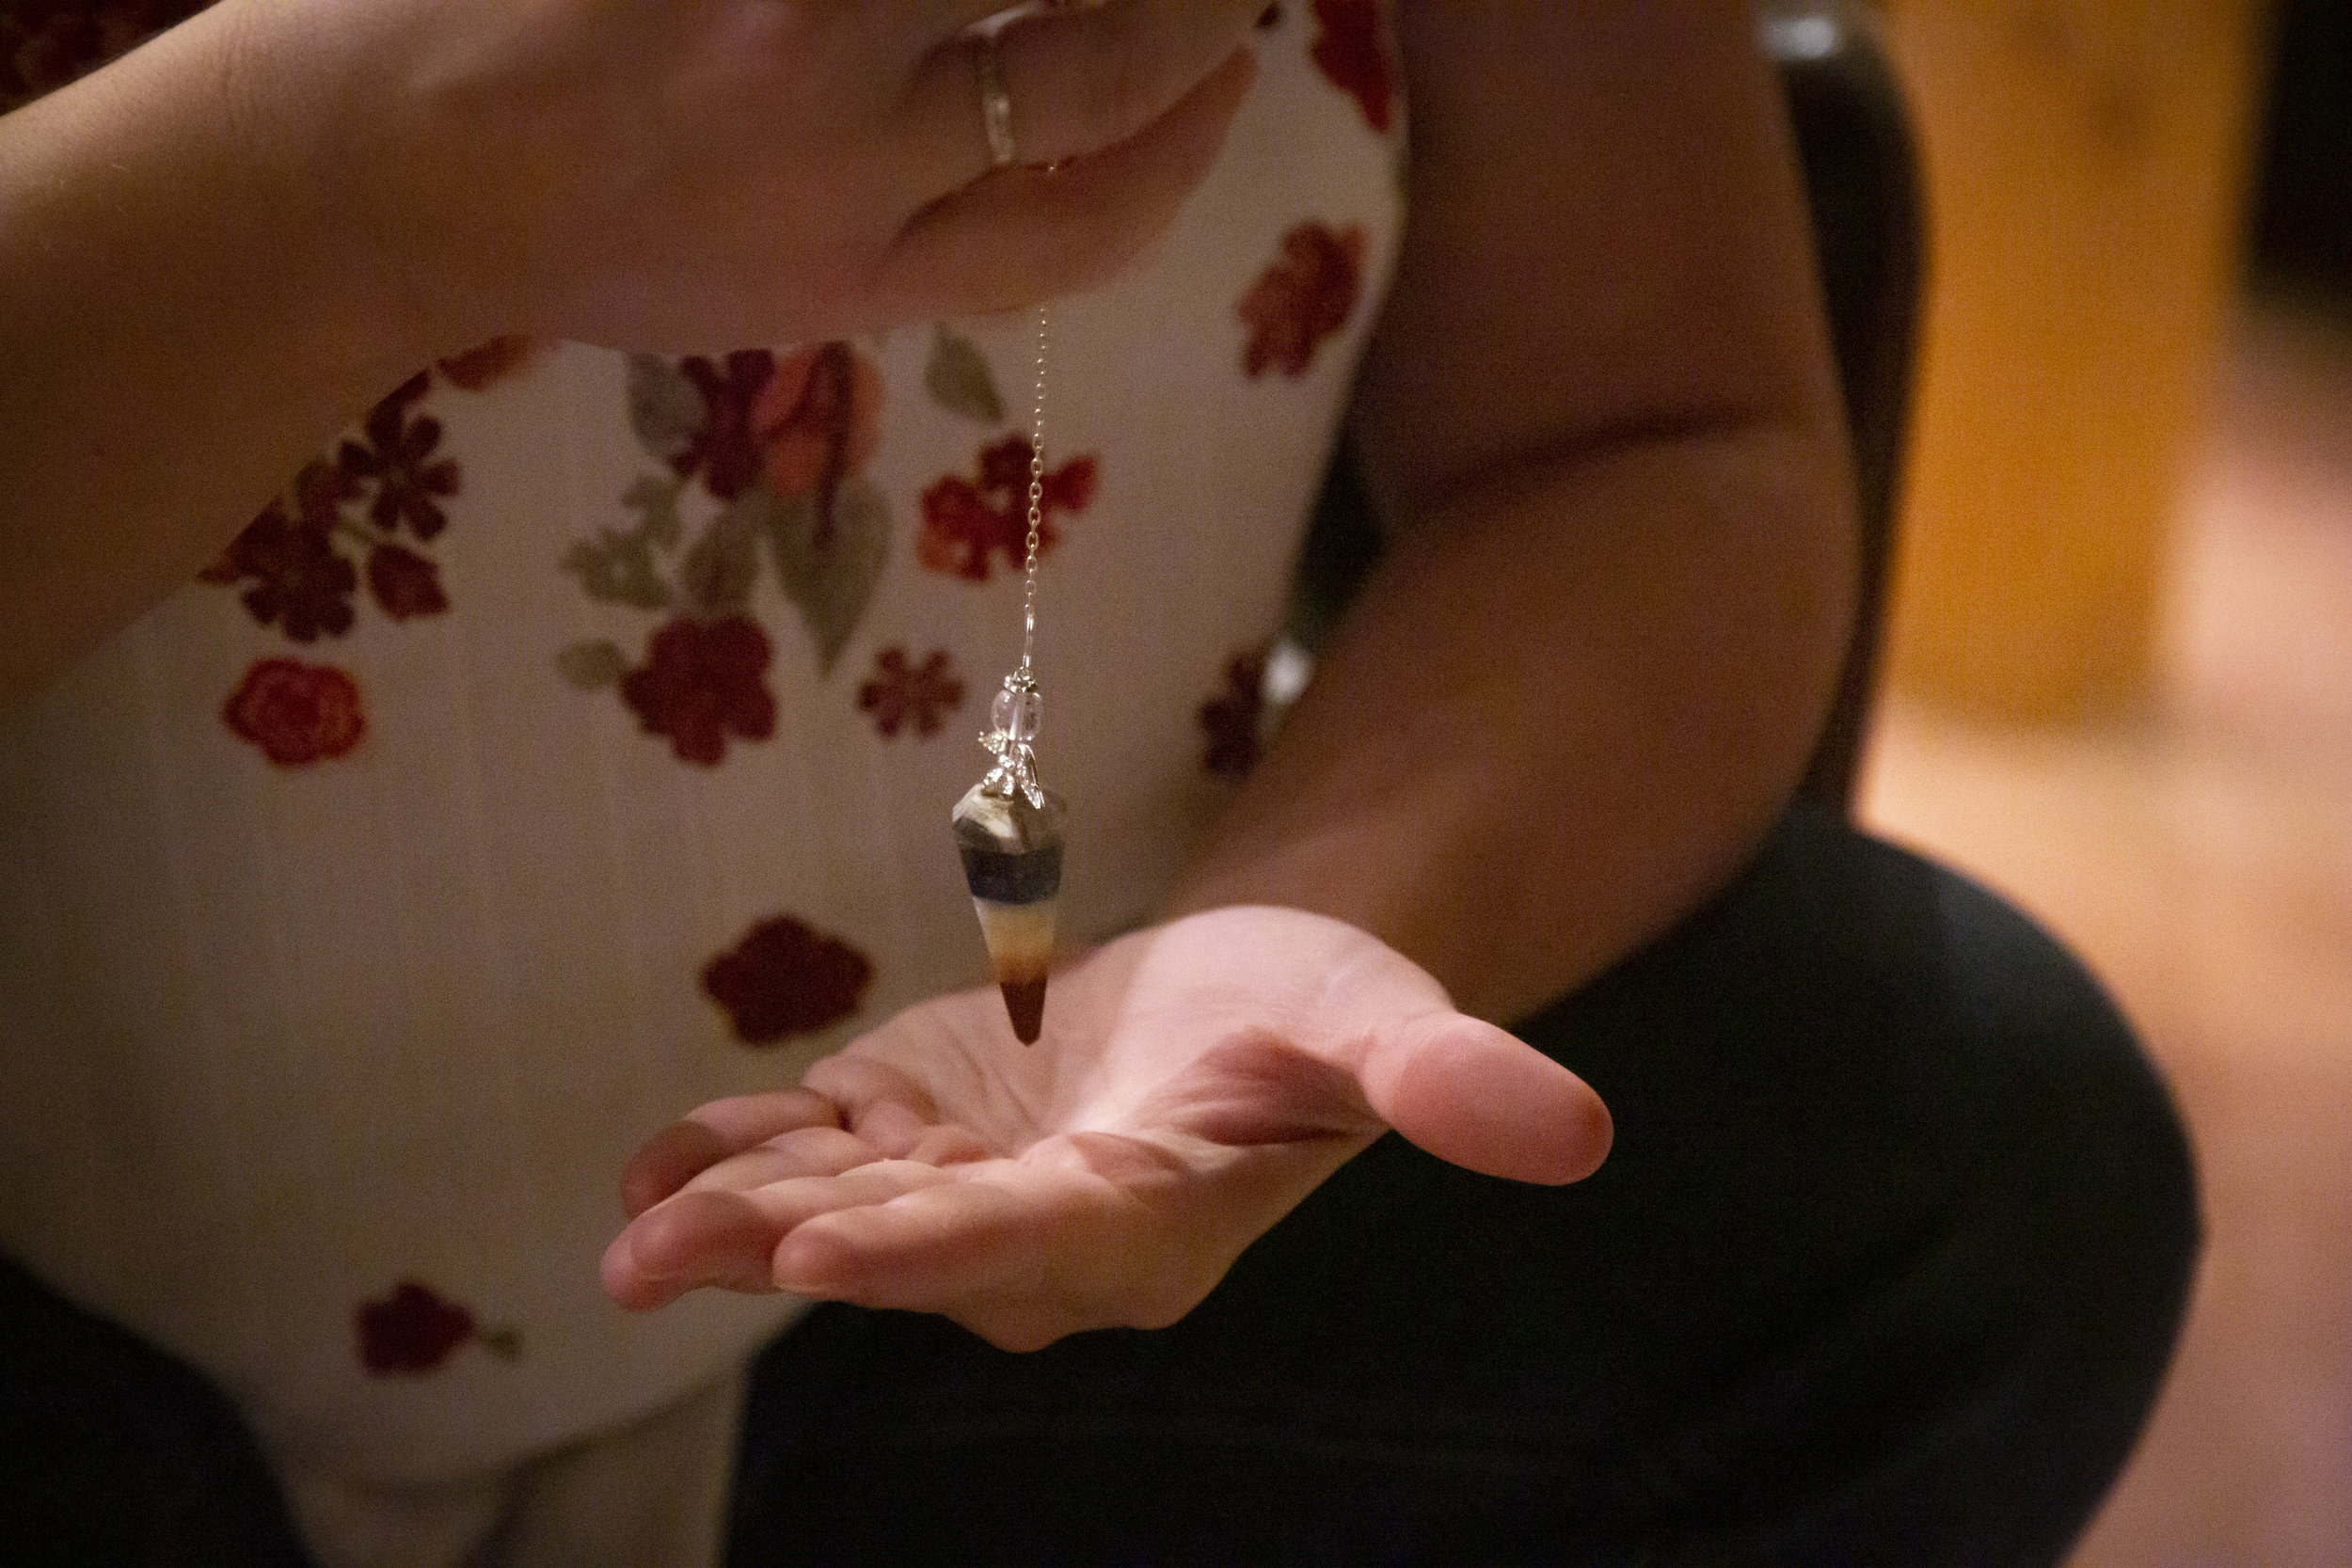 """New Tools for Healing - Angie will introduce the tools that have helped her along a healing journey after the deaths of her son and husband. To be taken, or left, these techniques are meant to provide a personalized """"toolbox"""" to bring home with you on your journey through grief and healing."""